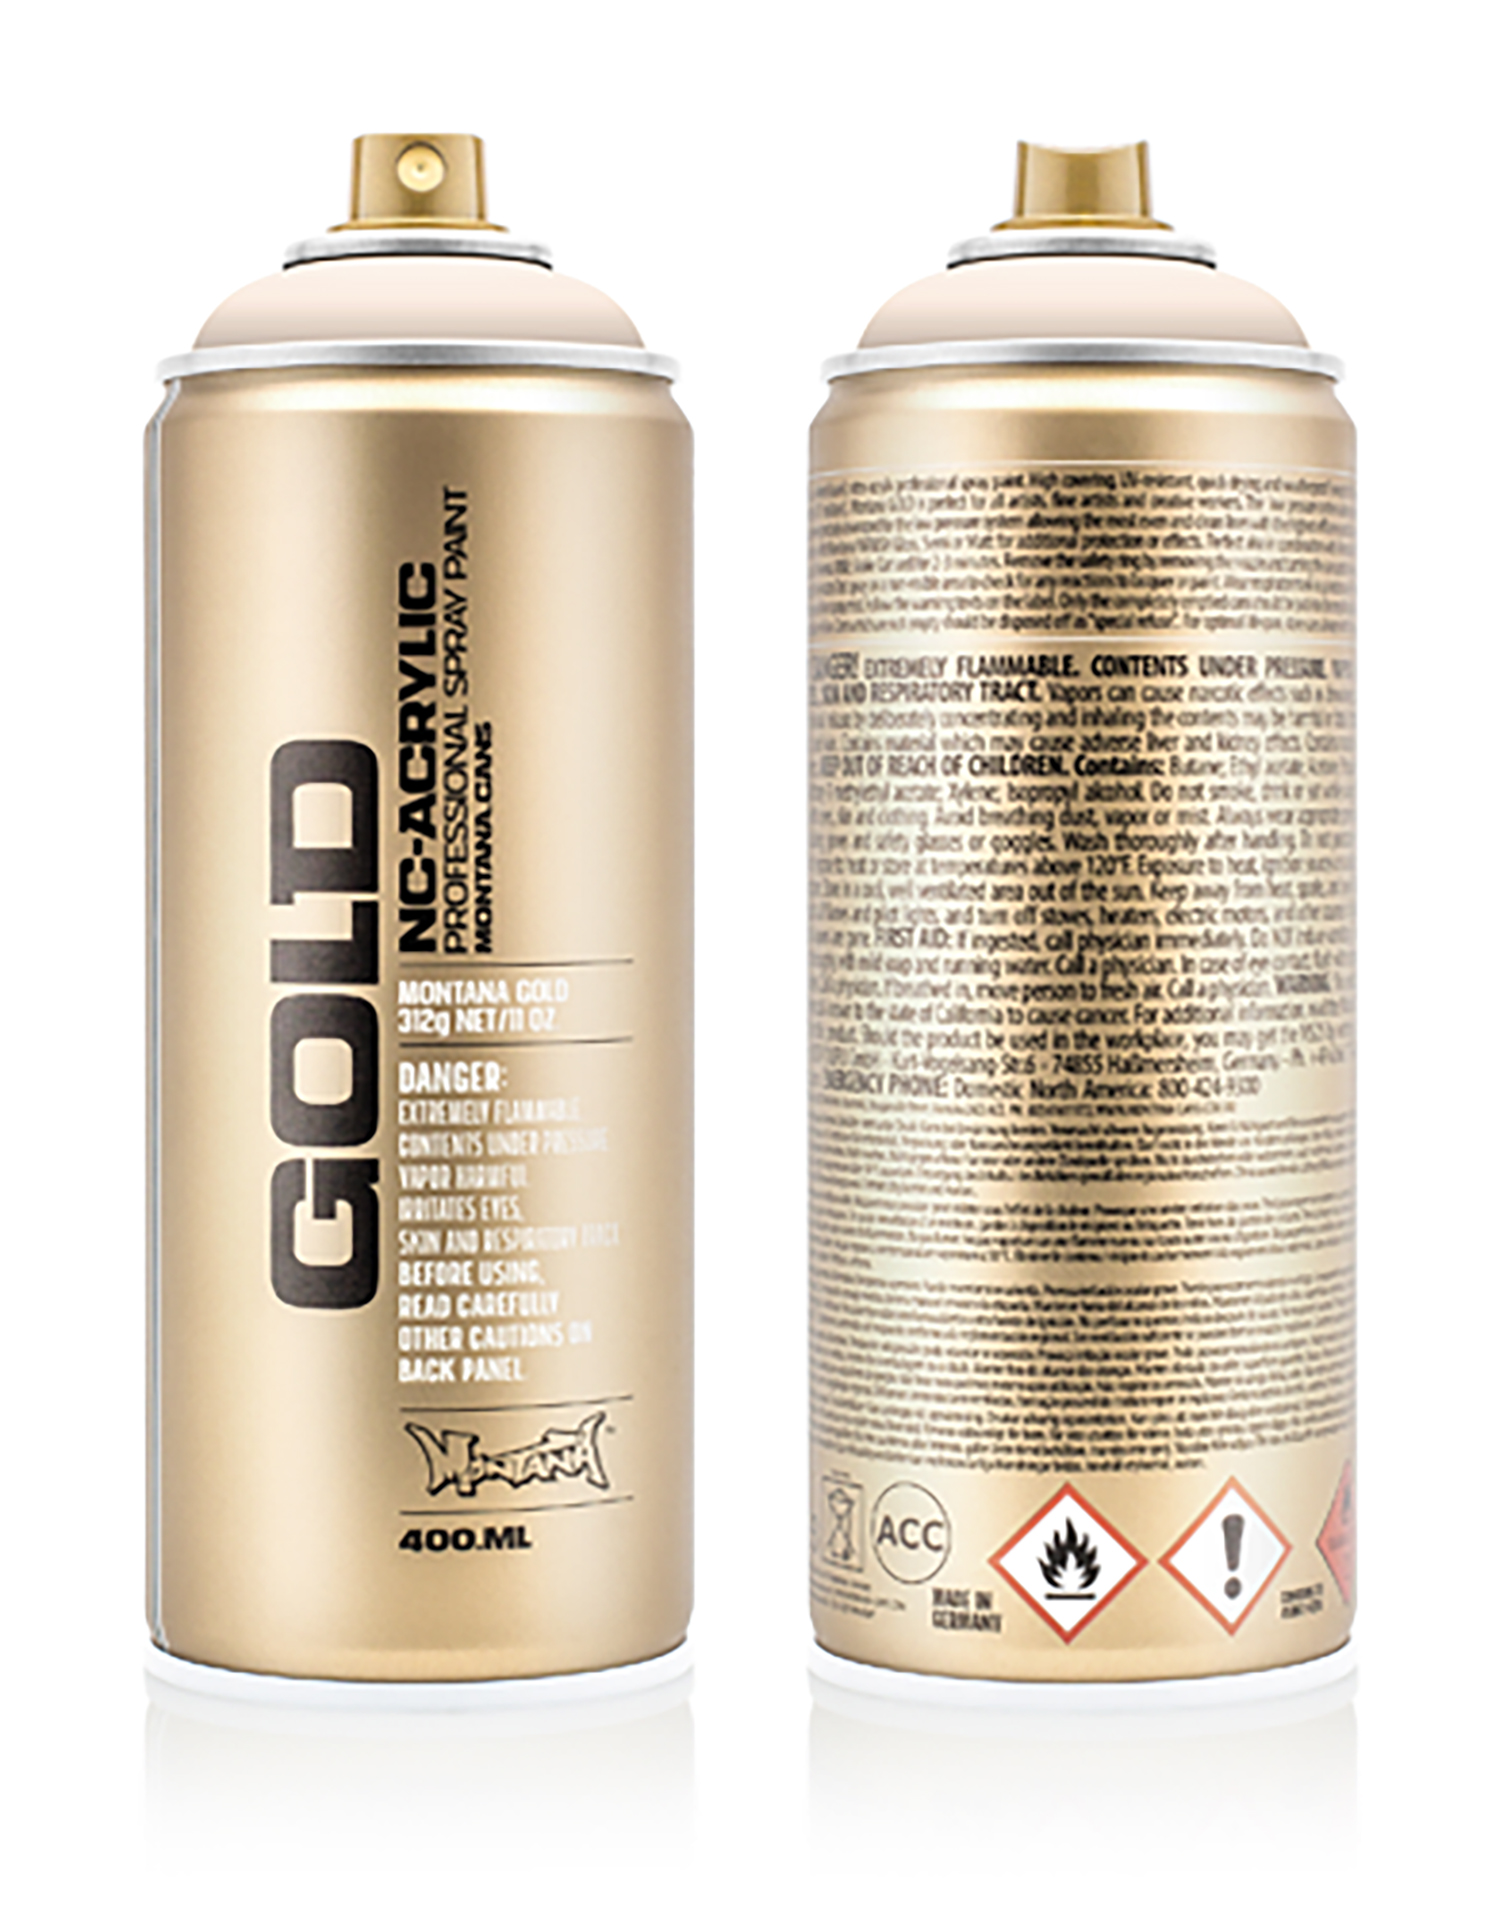 MONTANA-GOLD-SPRAY-400ML-G-2010